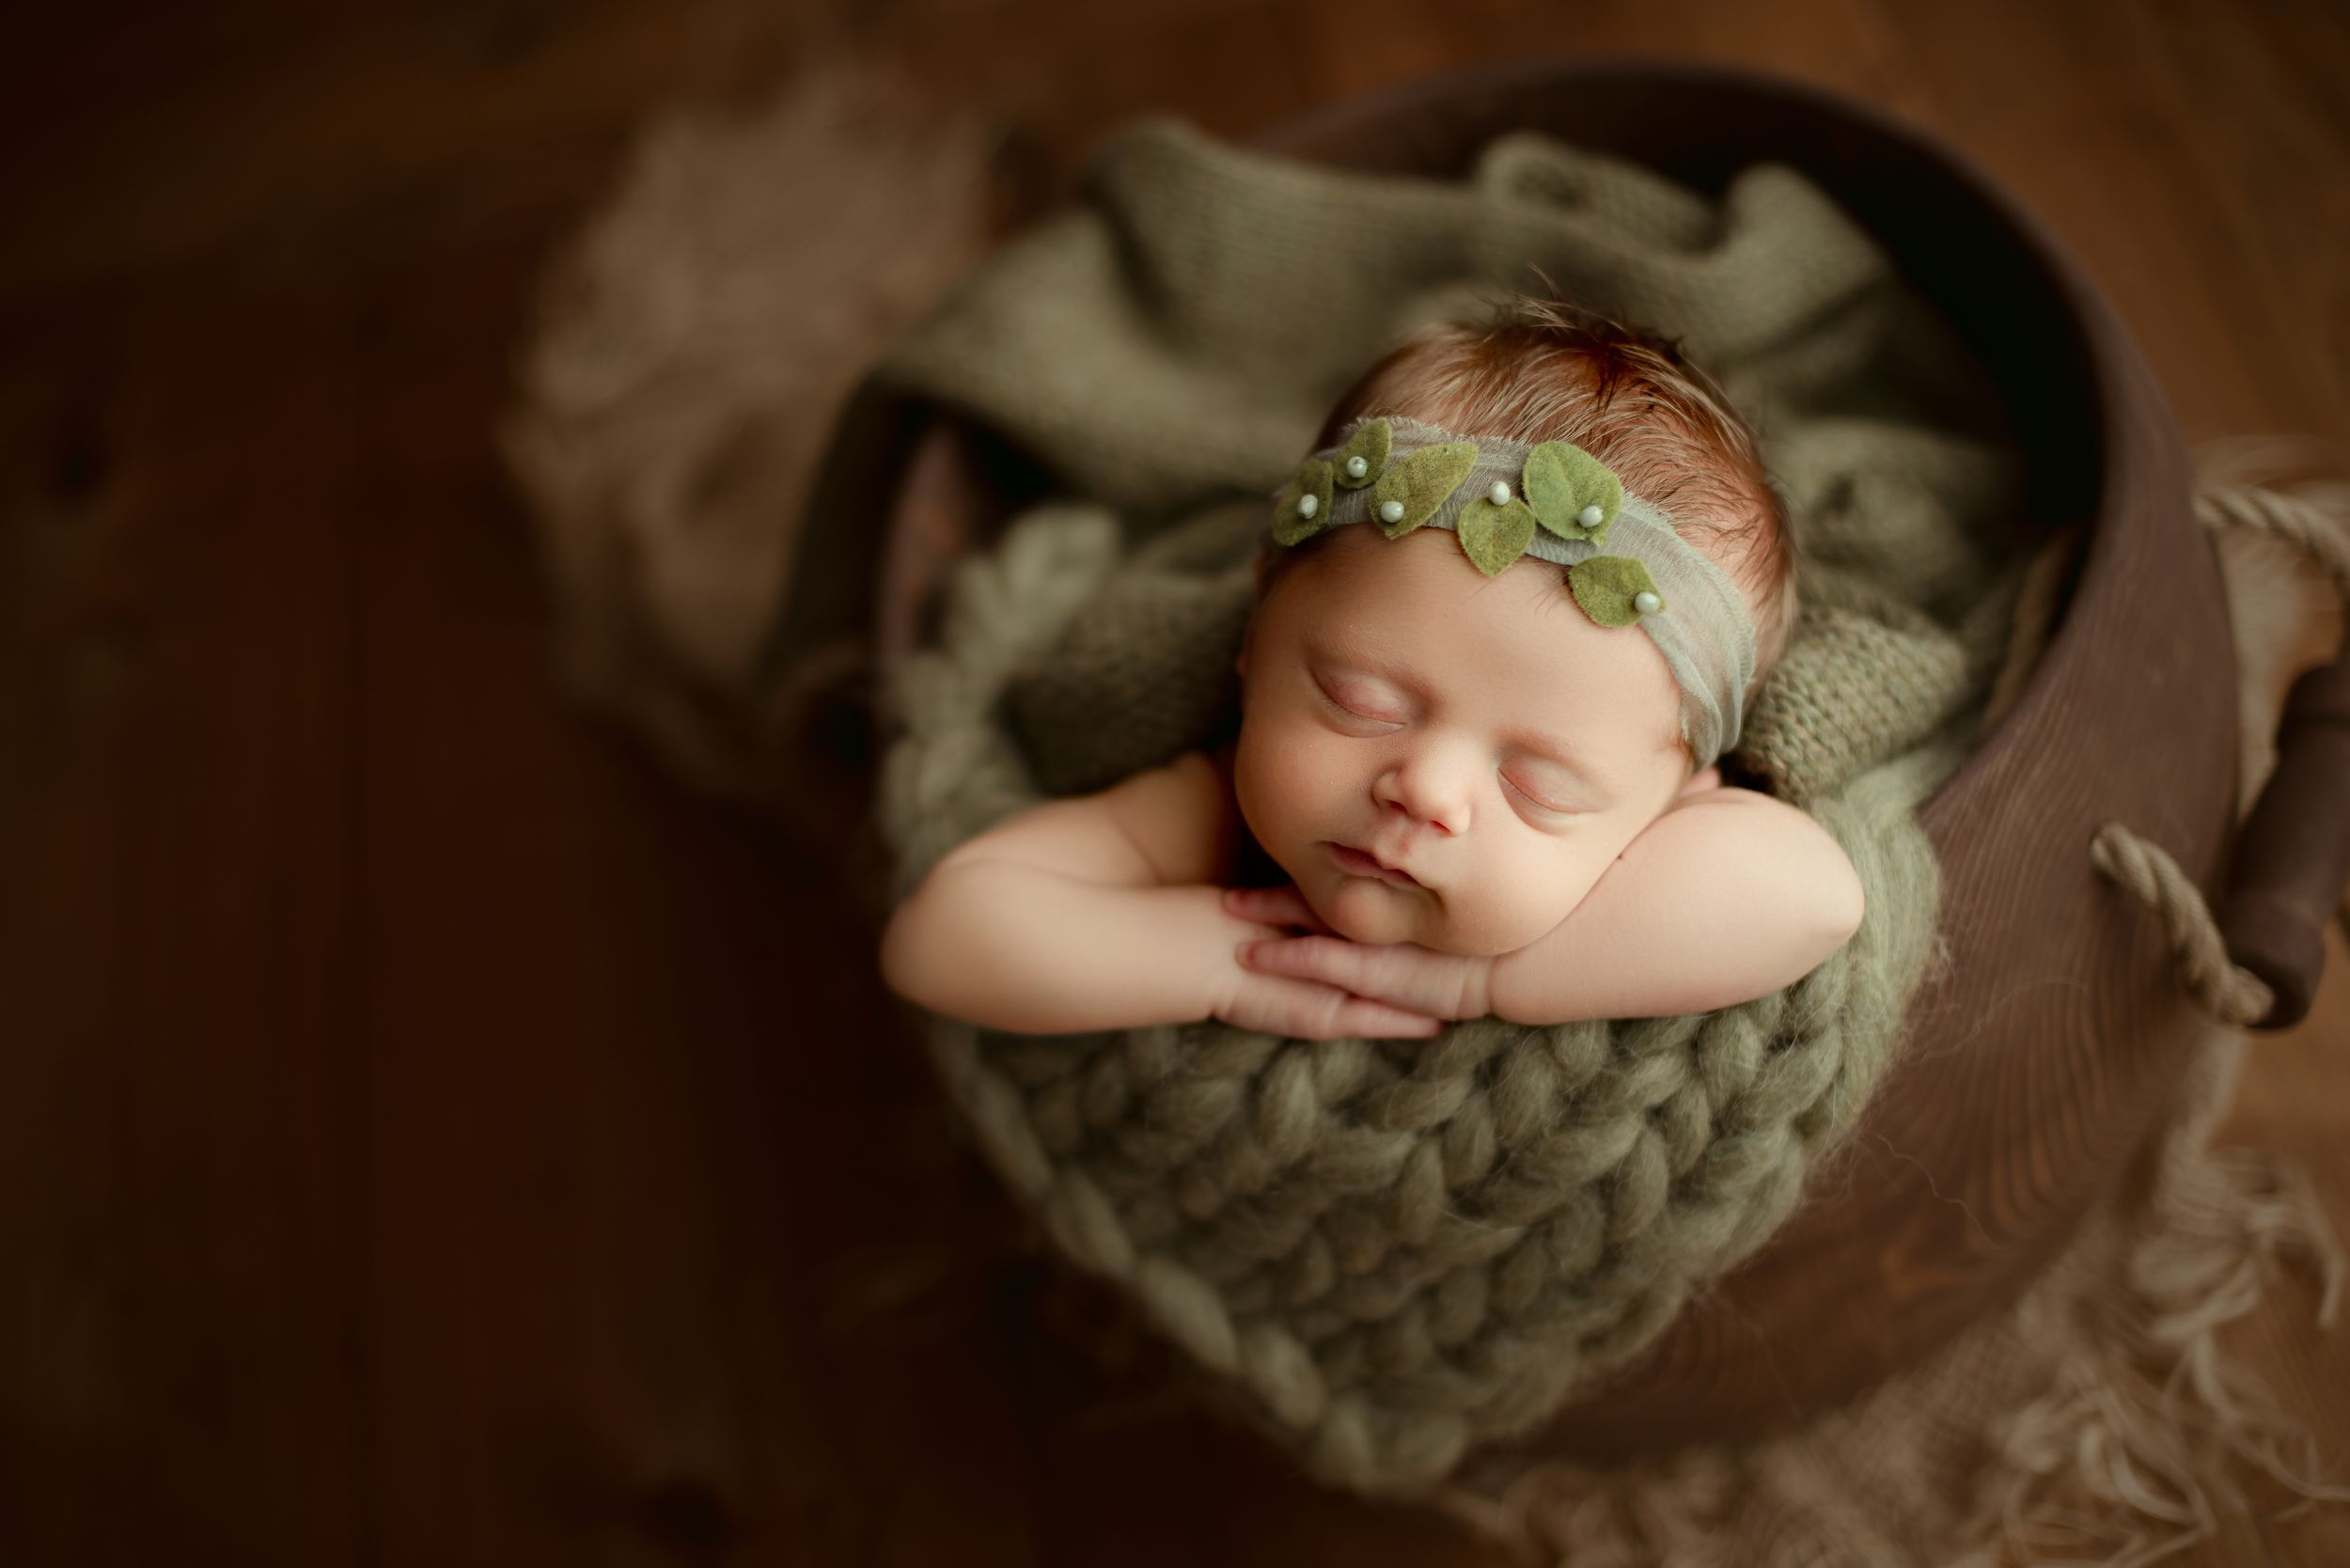 Calgary Newborn Photographer, Calgary Newborn Photography, Airdrie Newborn Photography, Airdrie Newborn Photographer